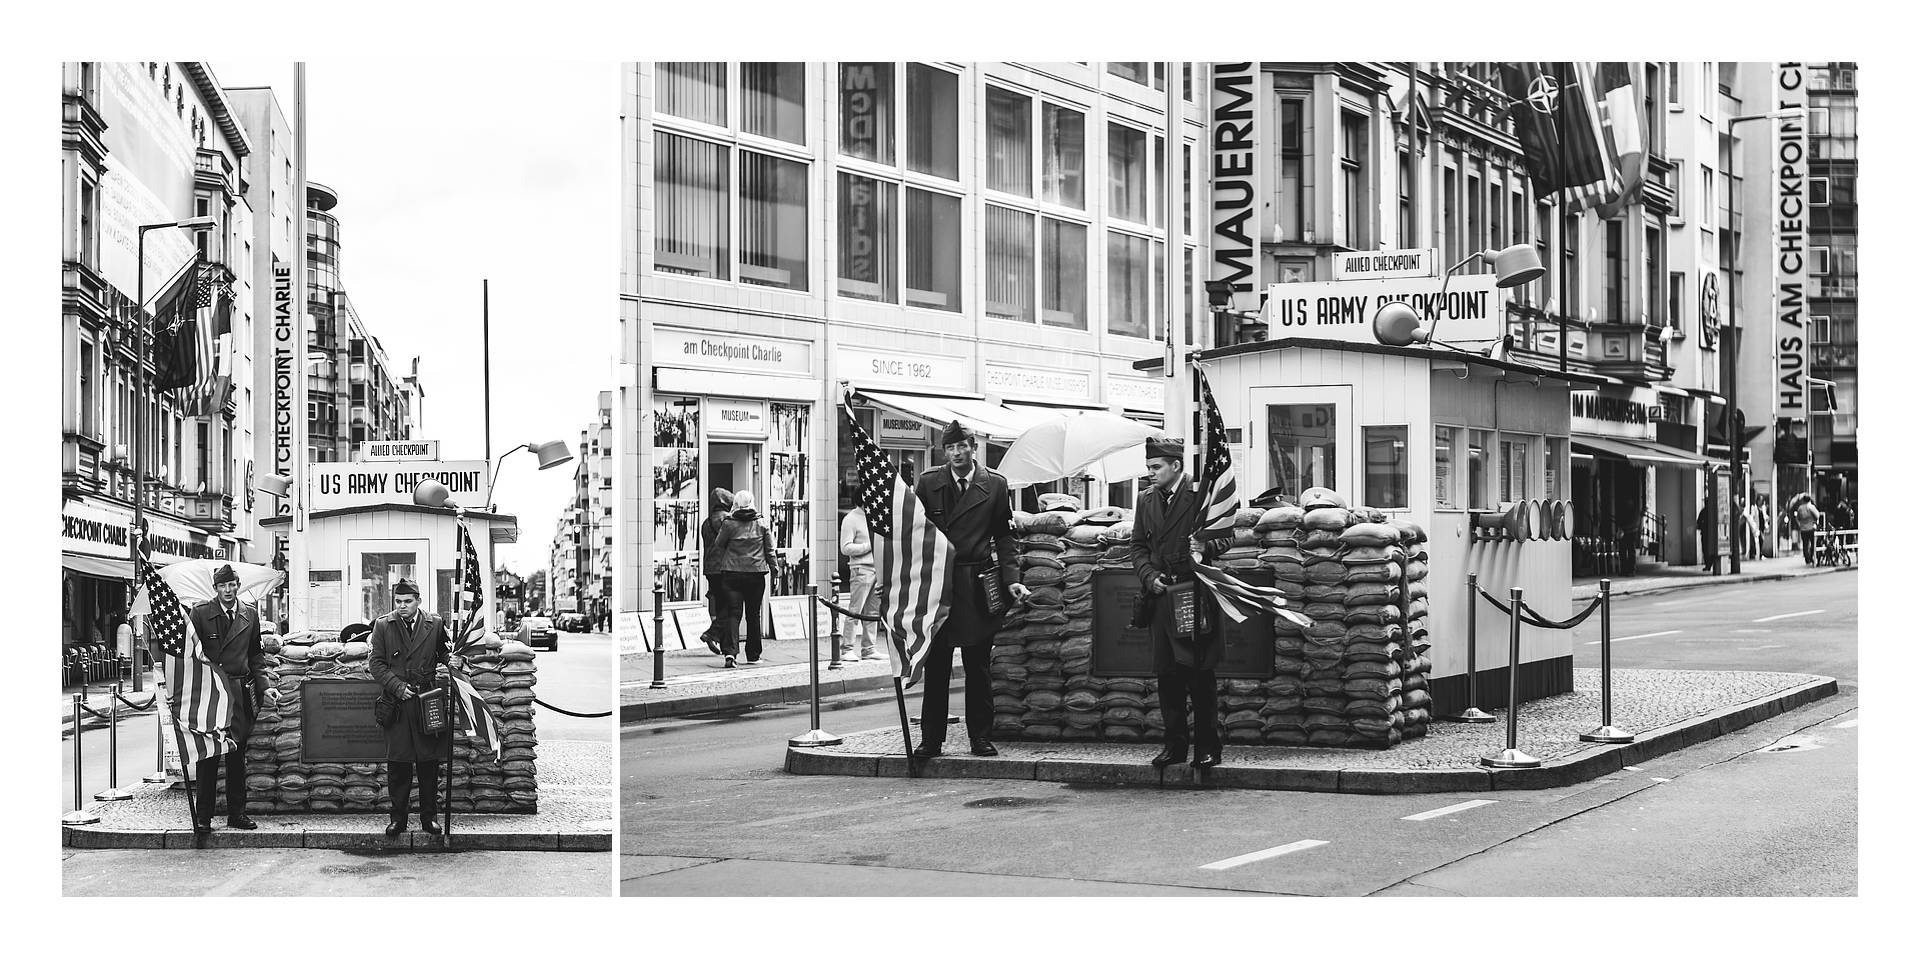 Live your Life - Descubre Berlín - CheckPoint Charlie